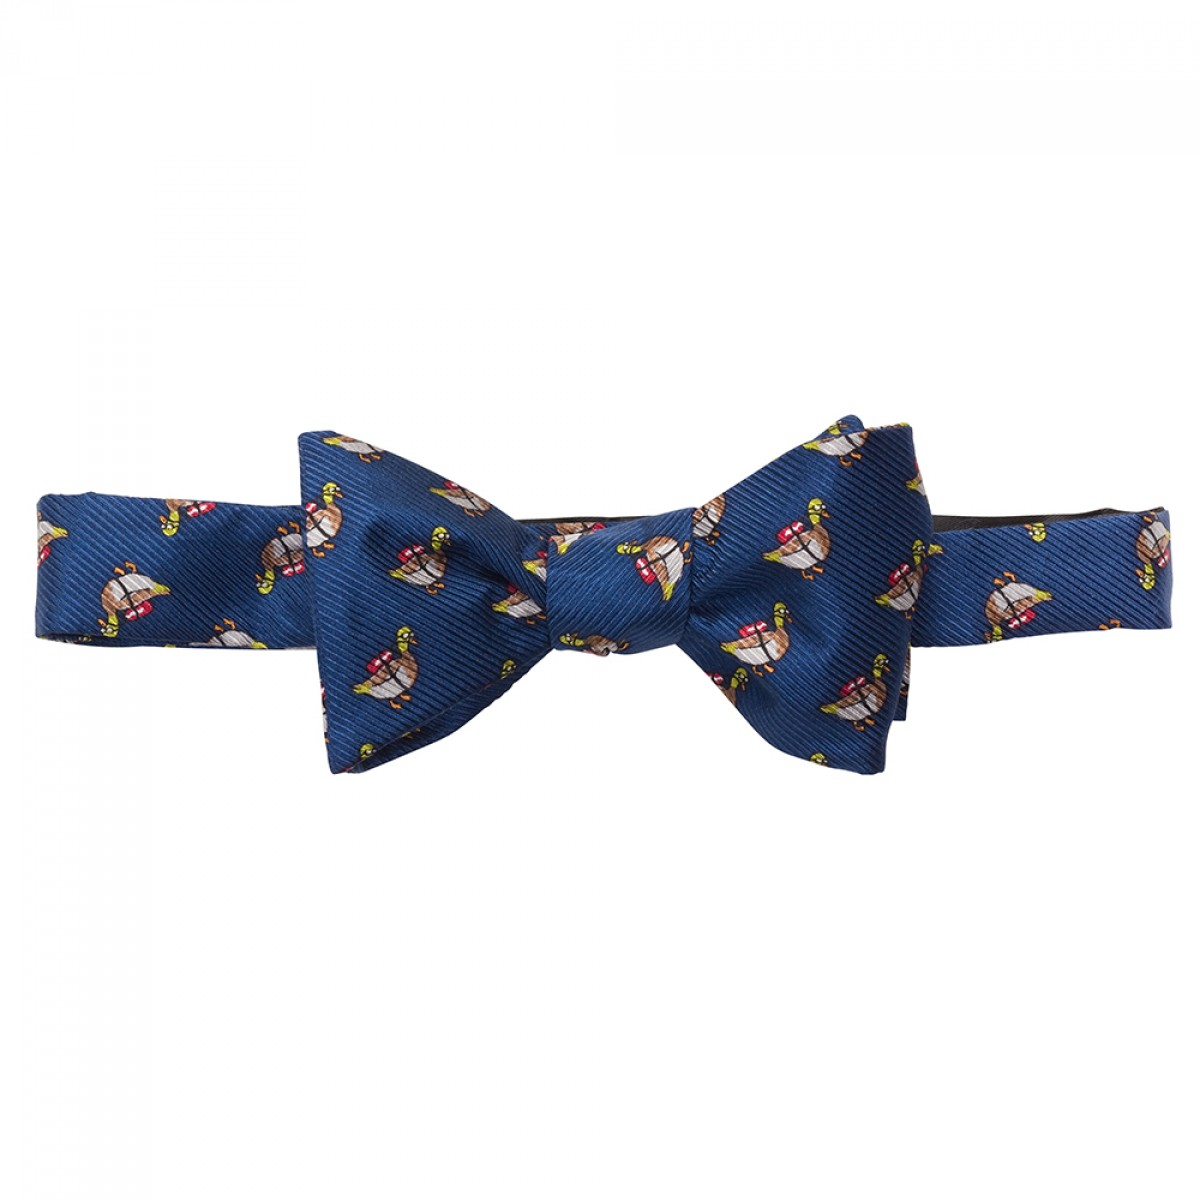 WM. Lamb & Son - Duck Diver Bow - Navy